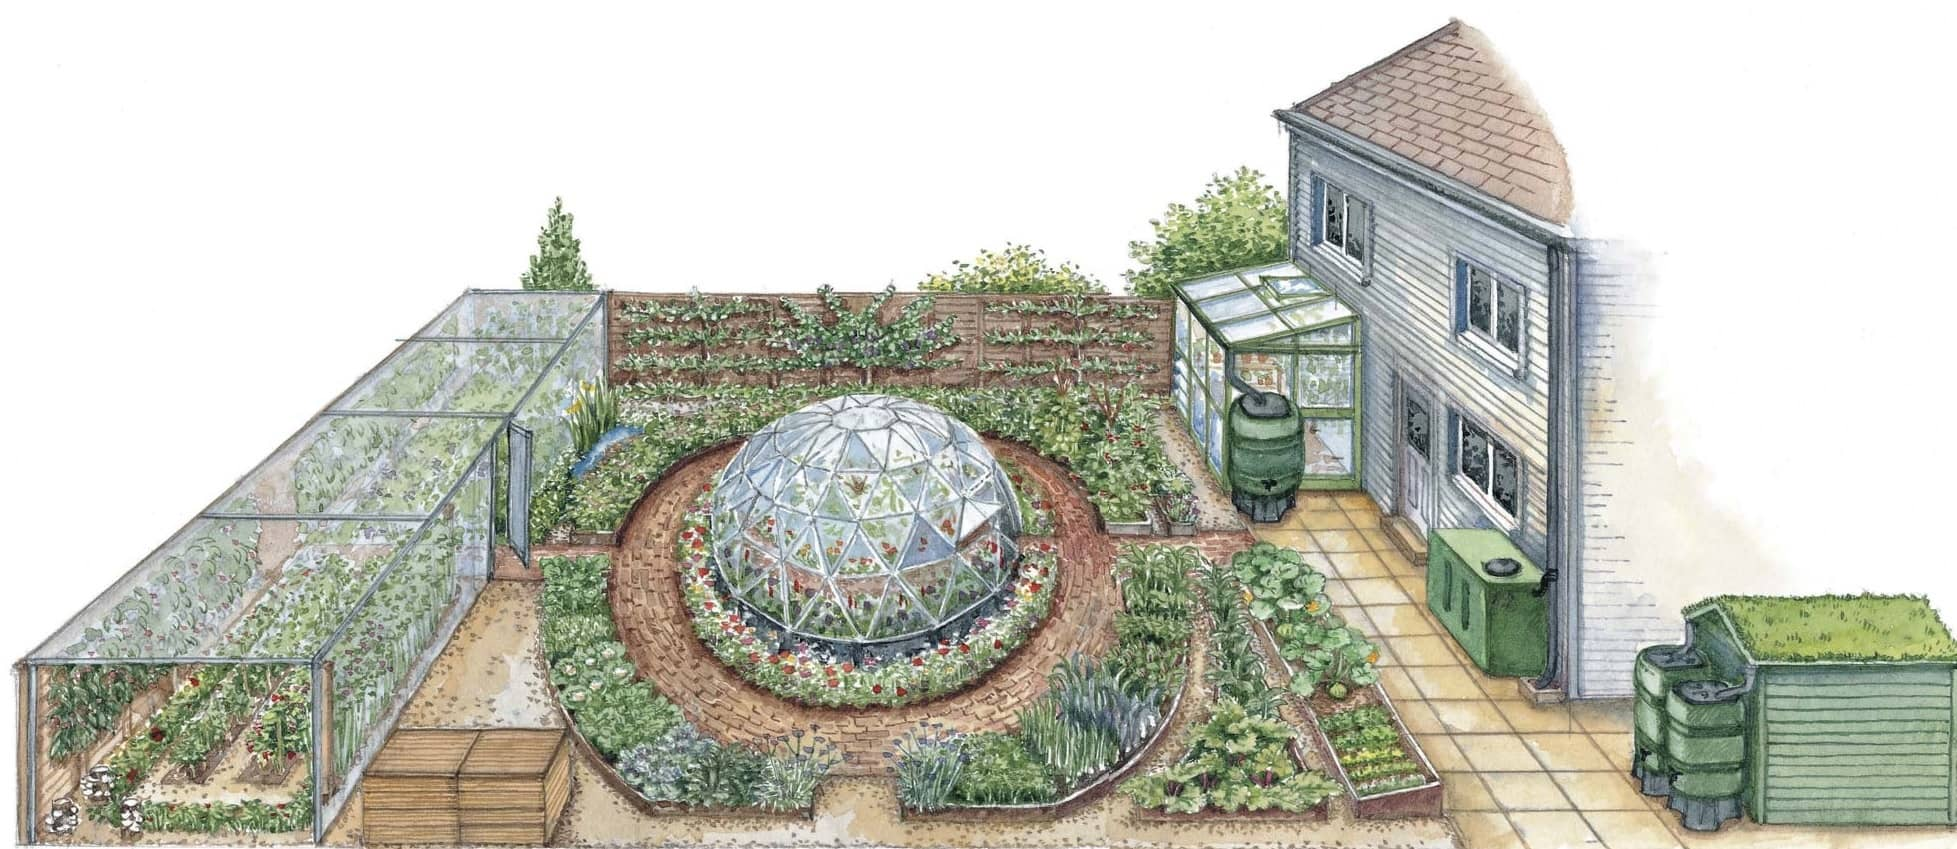 Eco-Fitting Your Garden